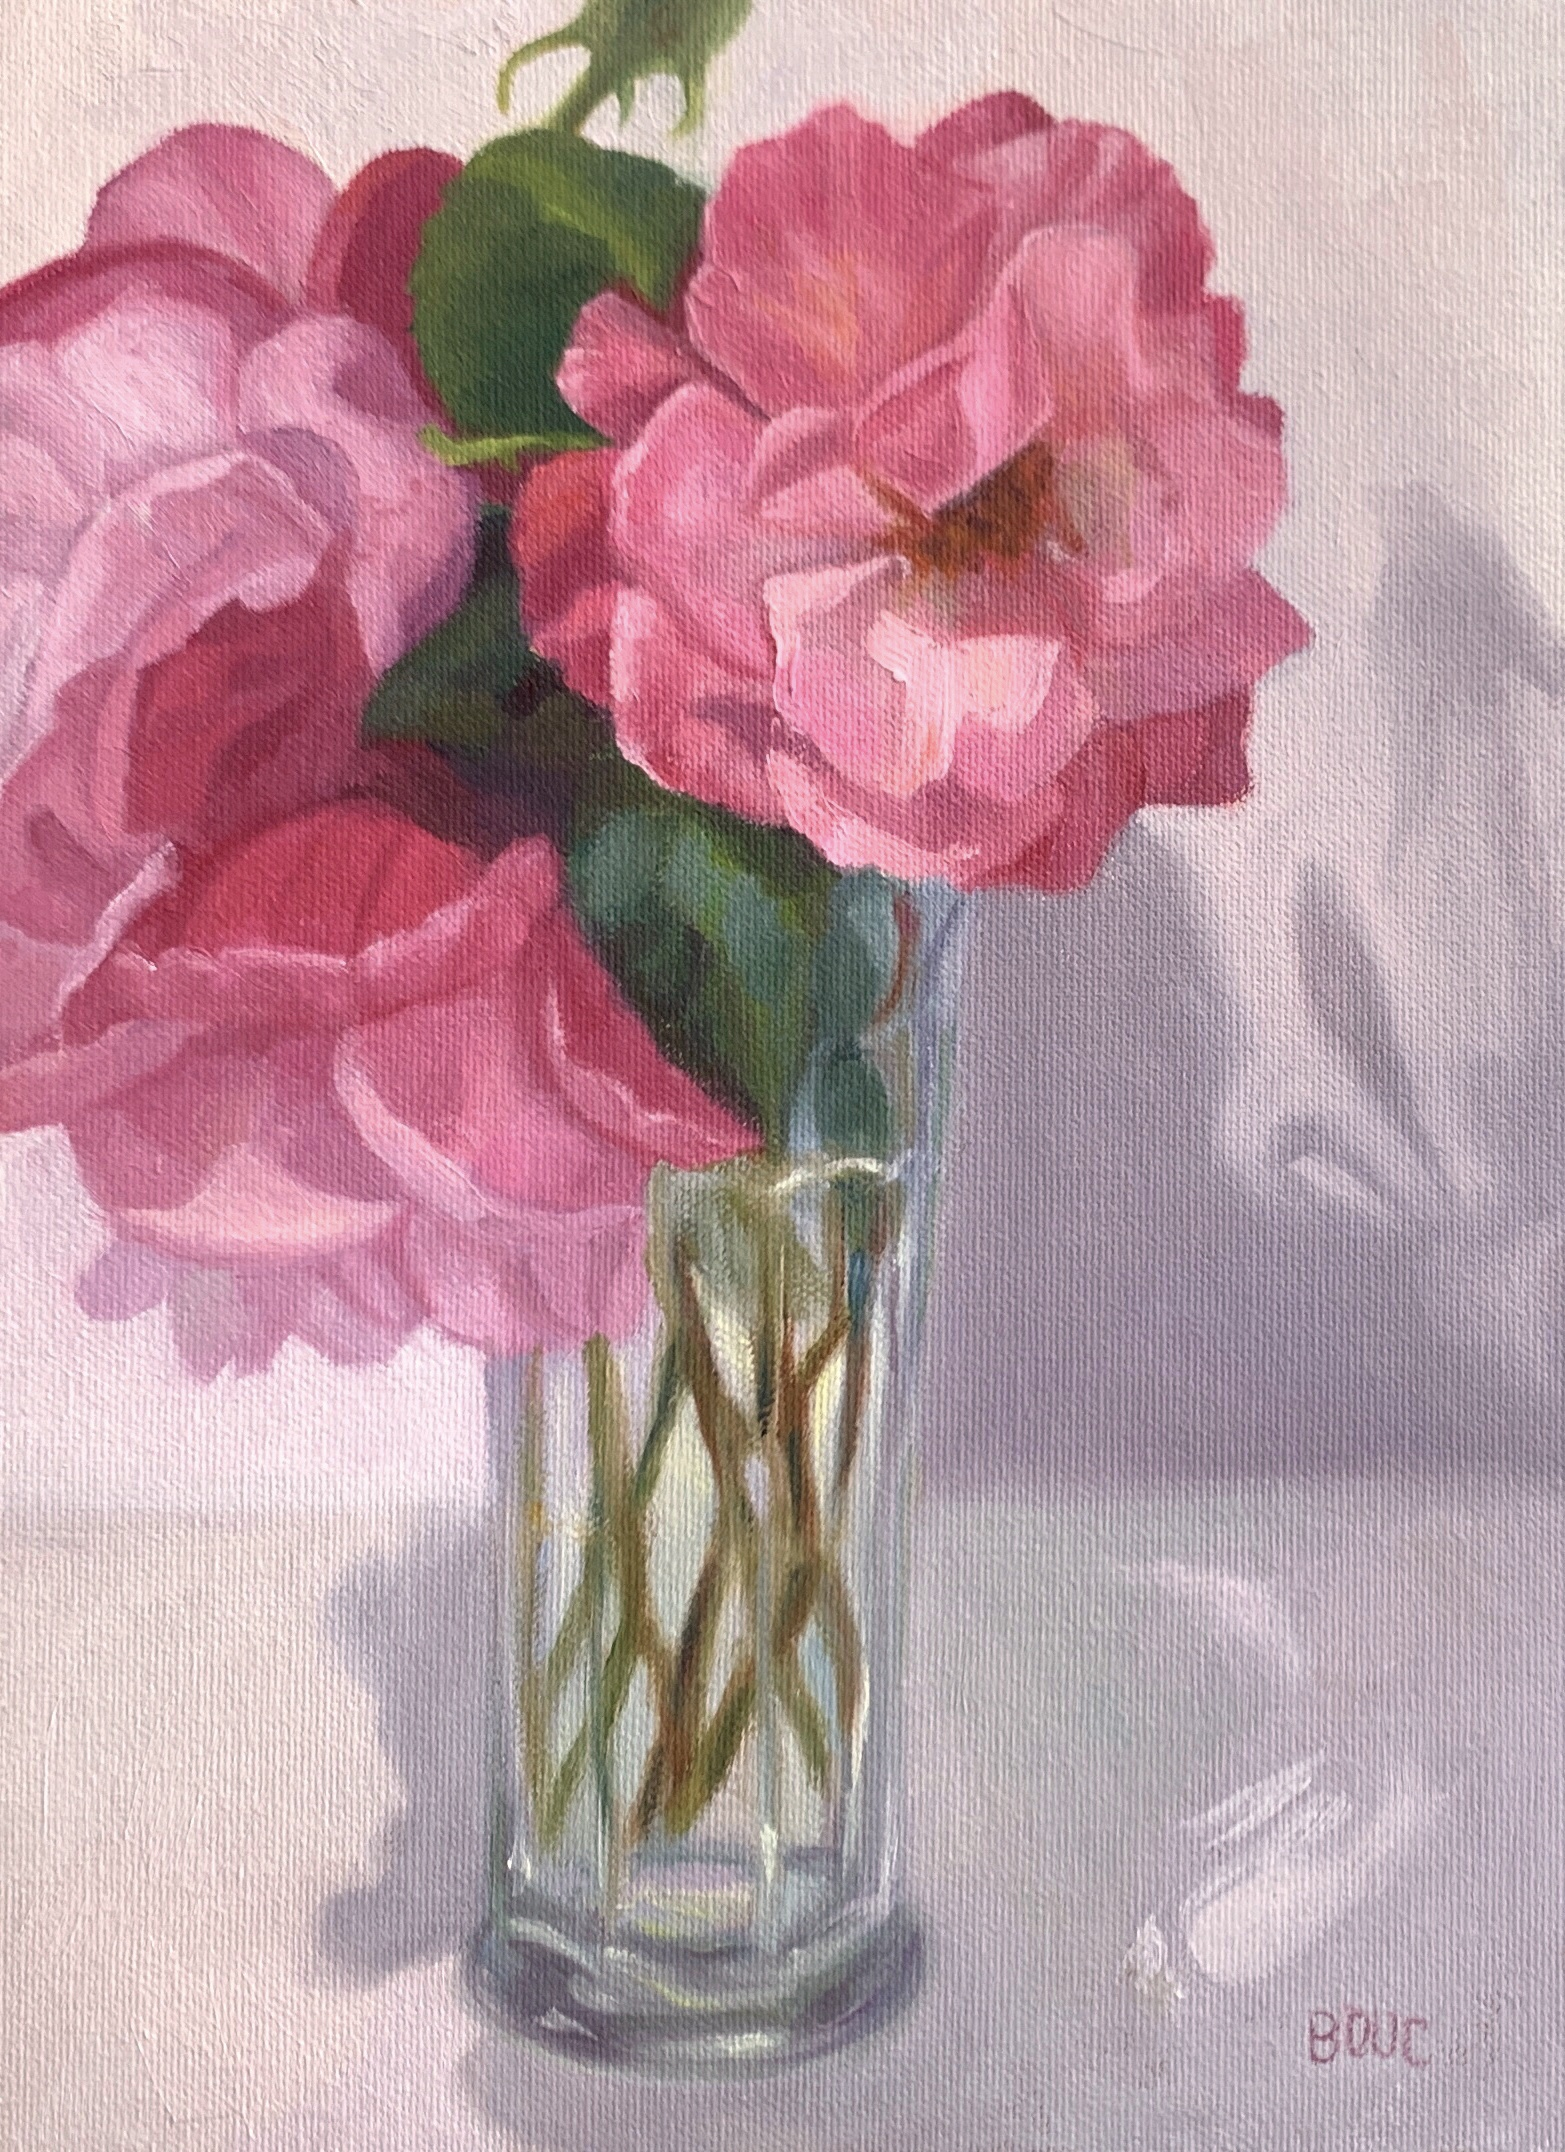 """Mr. Grumpy's Cheery Roses"", painted from life, finished from photo after flowers died, oil on canvas, 12x9"""